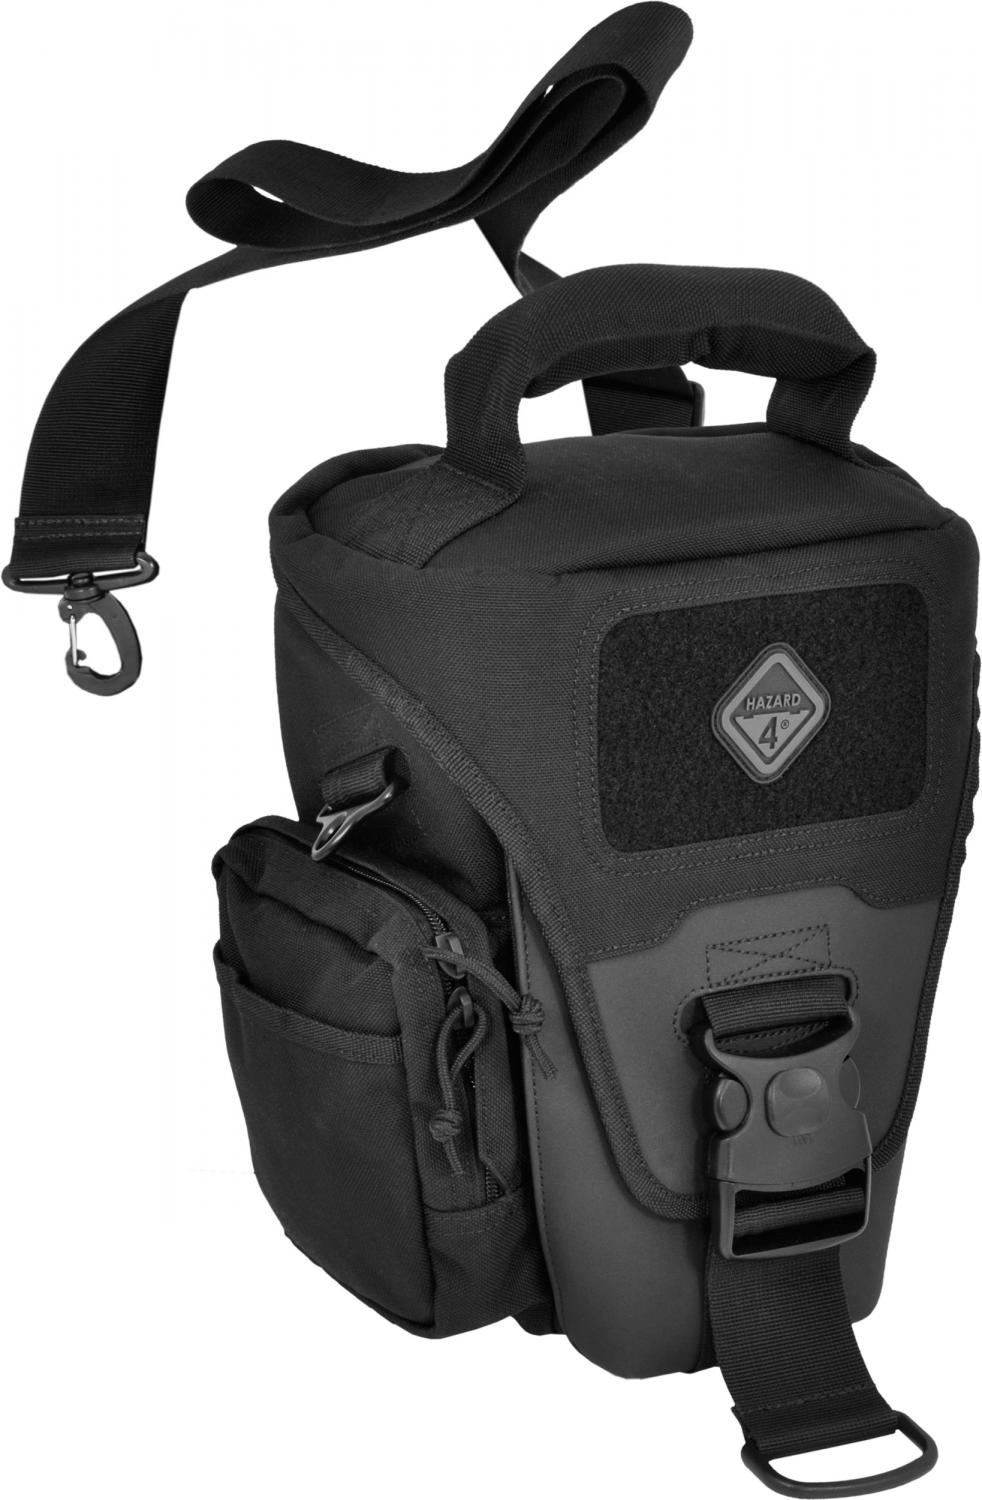 Hazard 4 Wedge SLR Camera Case, Black